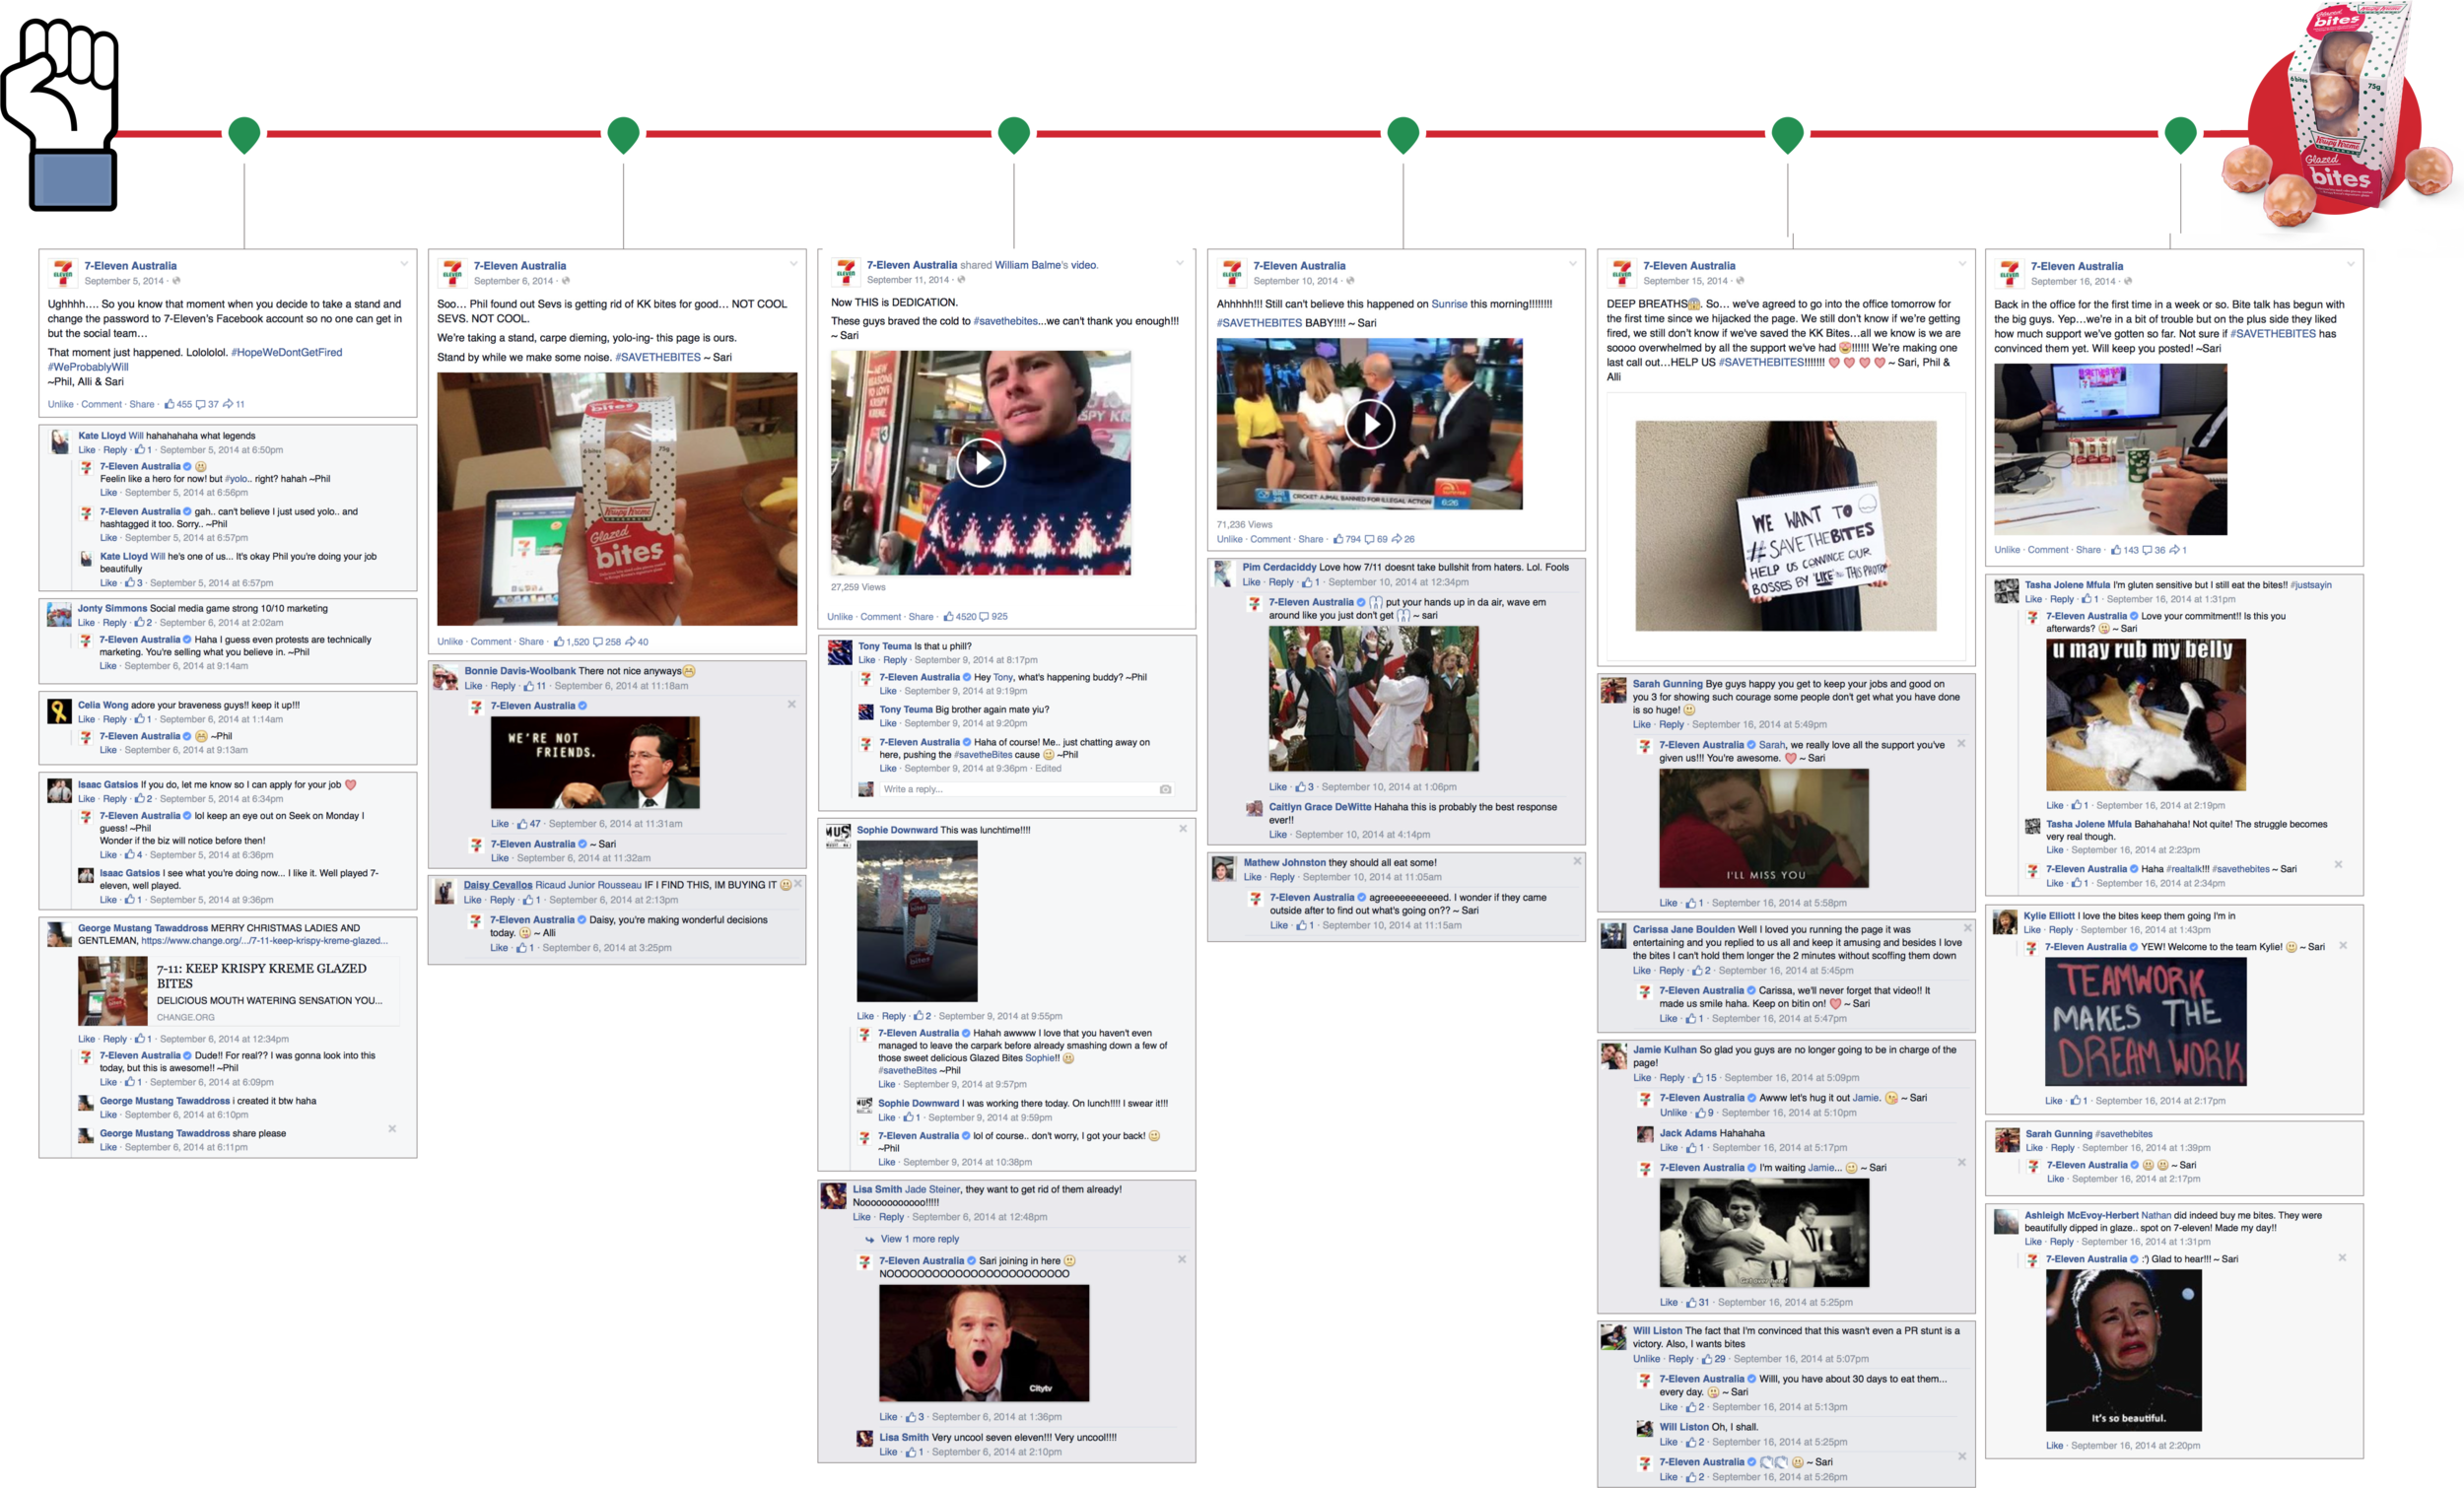 Examples of posts and interaction